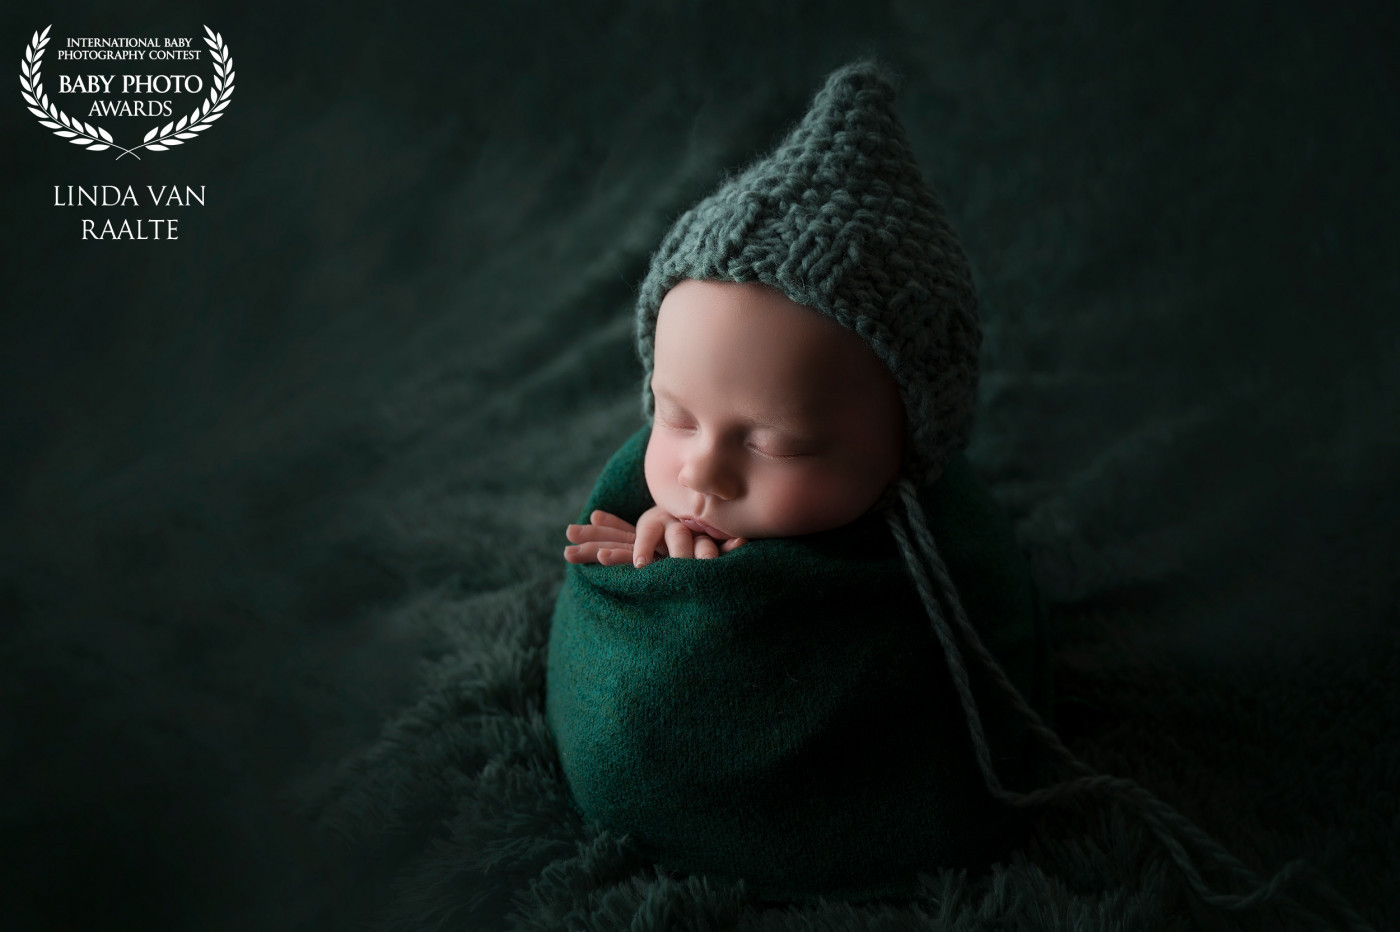 Fine art award winning newborn portret